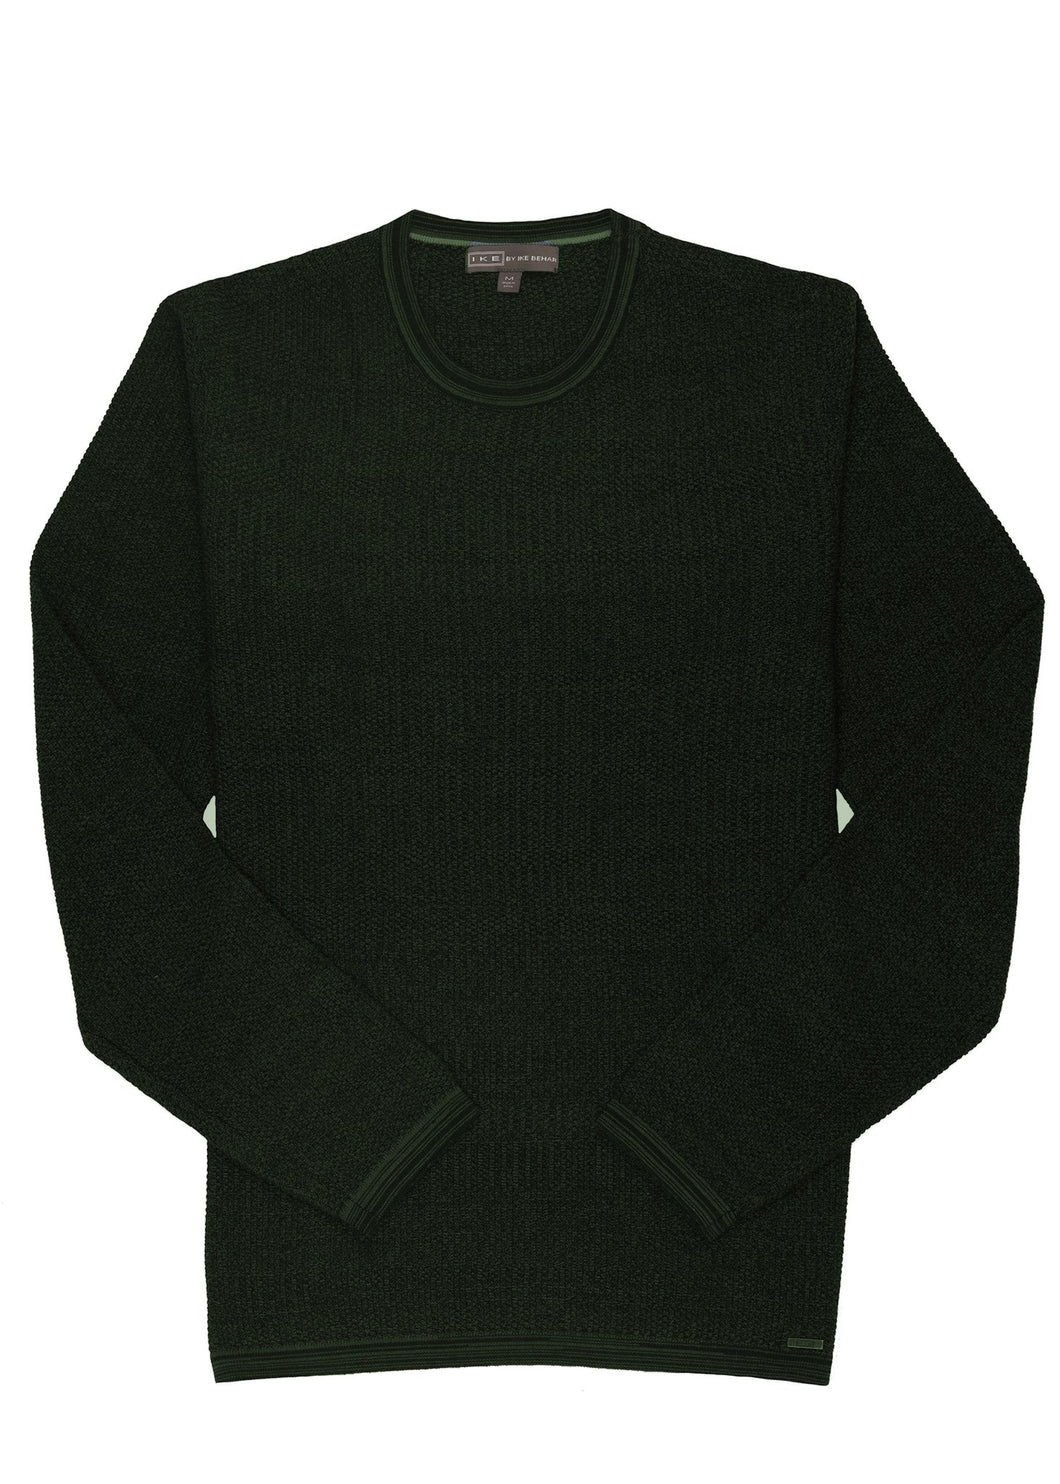 Moss Ike by Ike Behar Cotton Seed Stitched Sweater